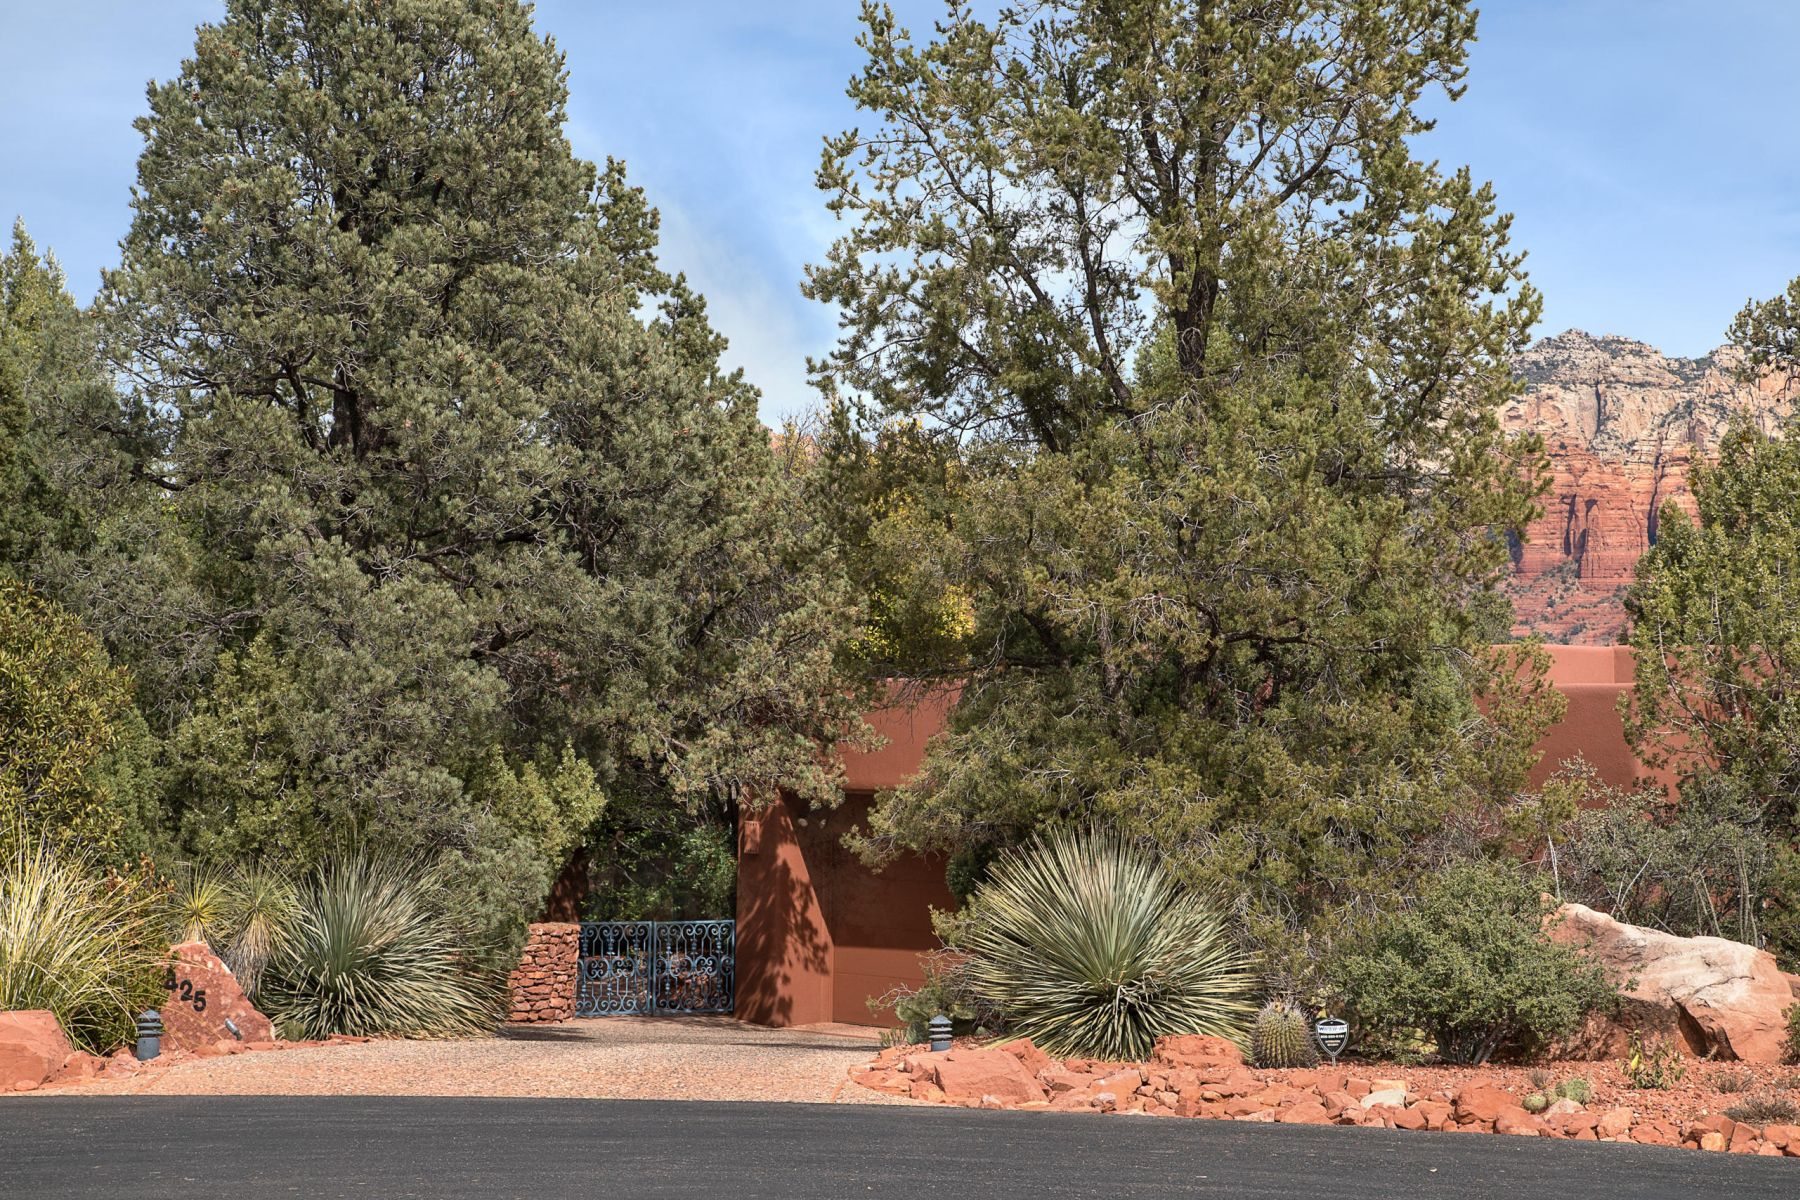 Single Family Home for Sale at Amazing Mystic Hills Home Site 425 Acacia Drive, Sedona, Arizona, 86336 United States